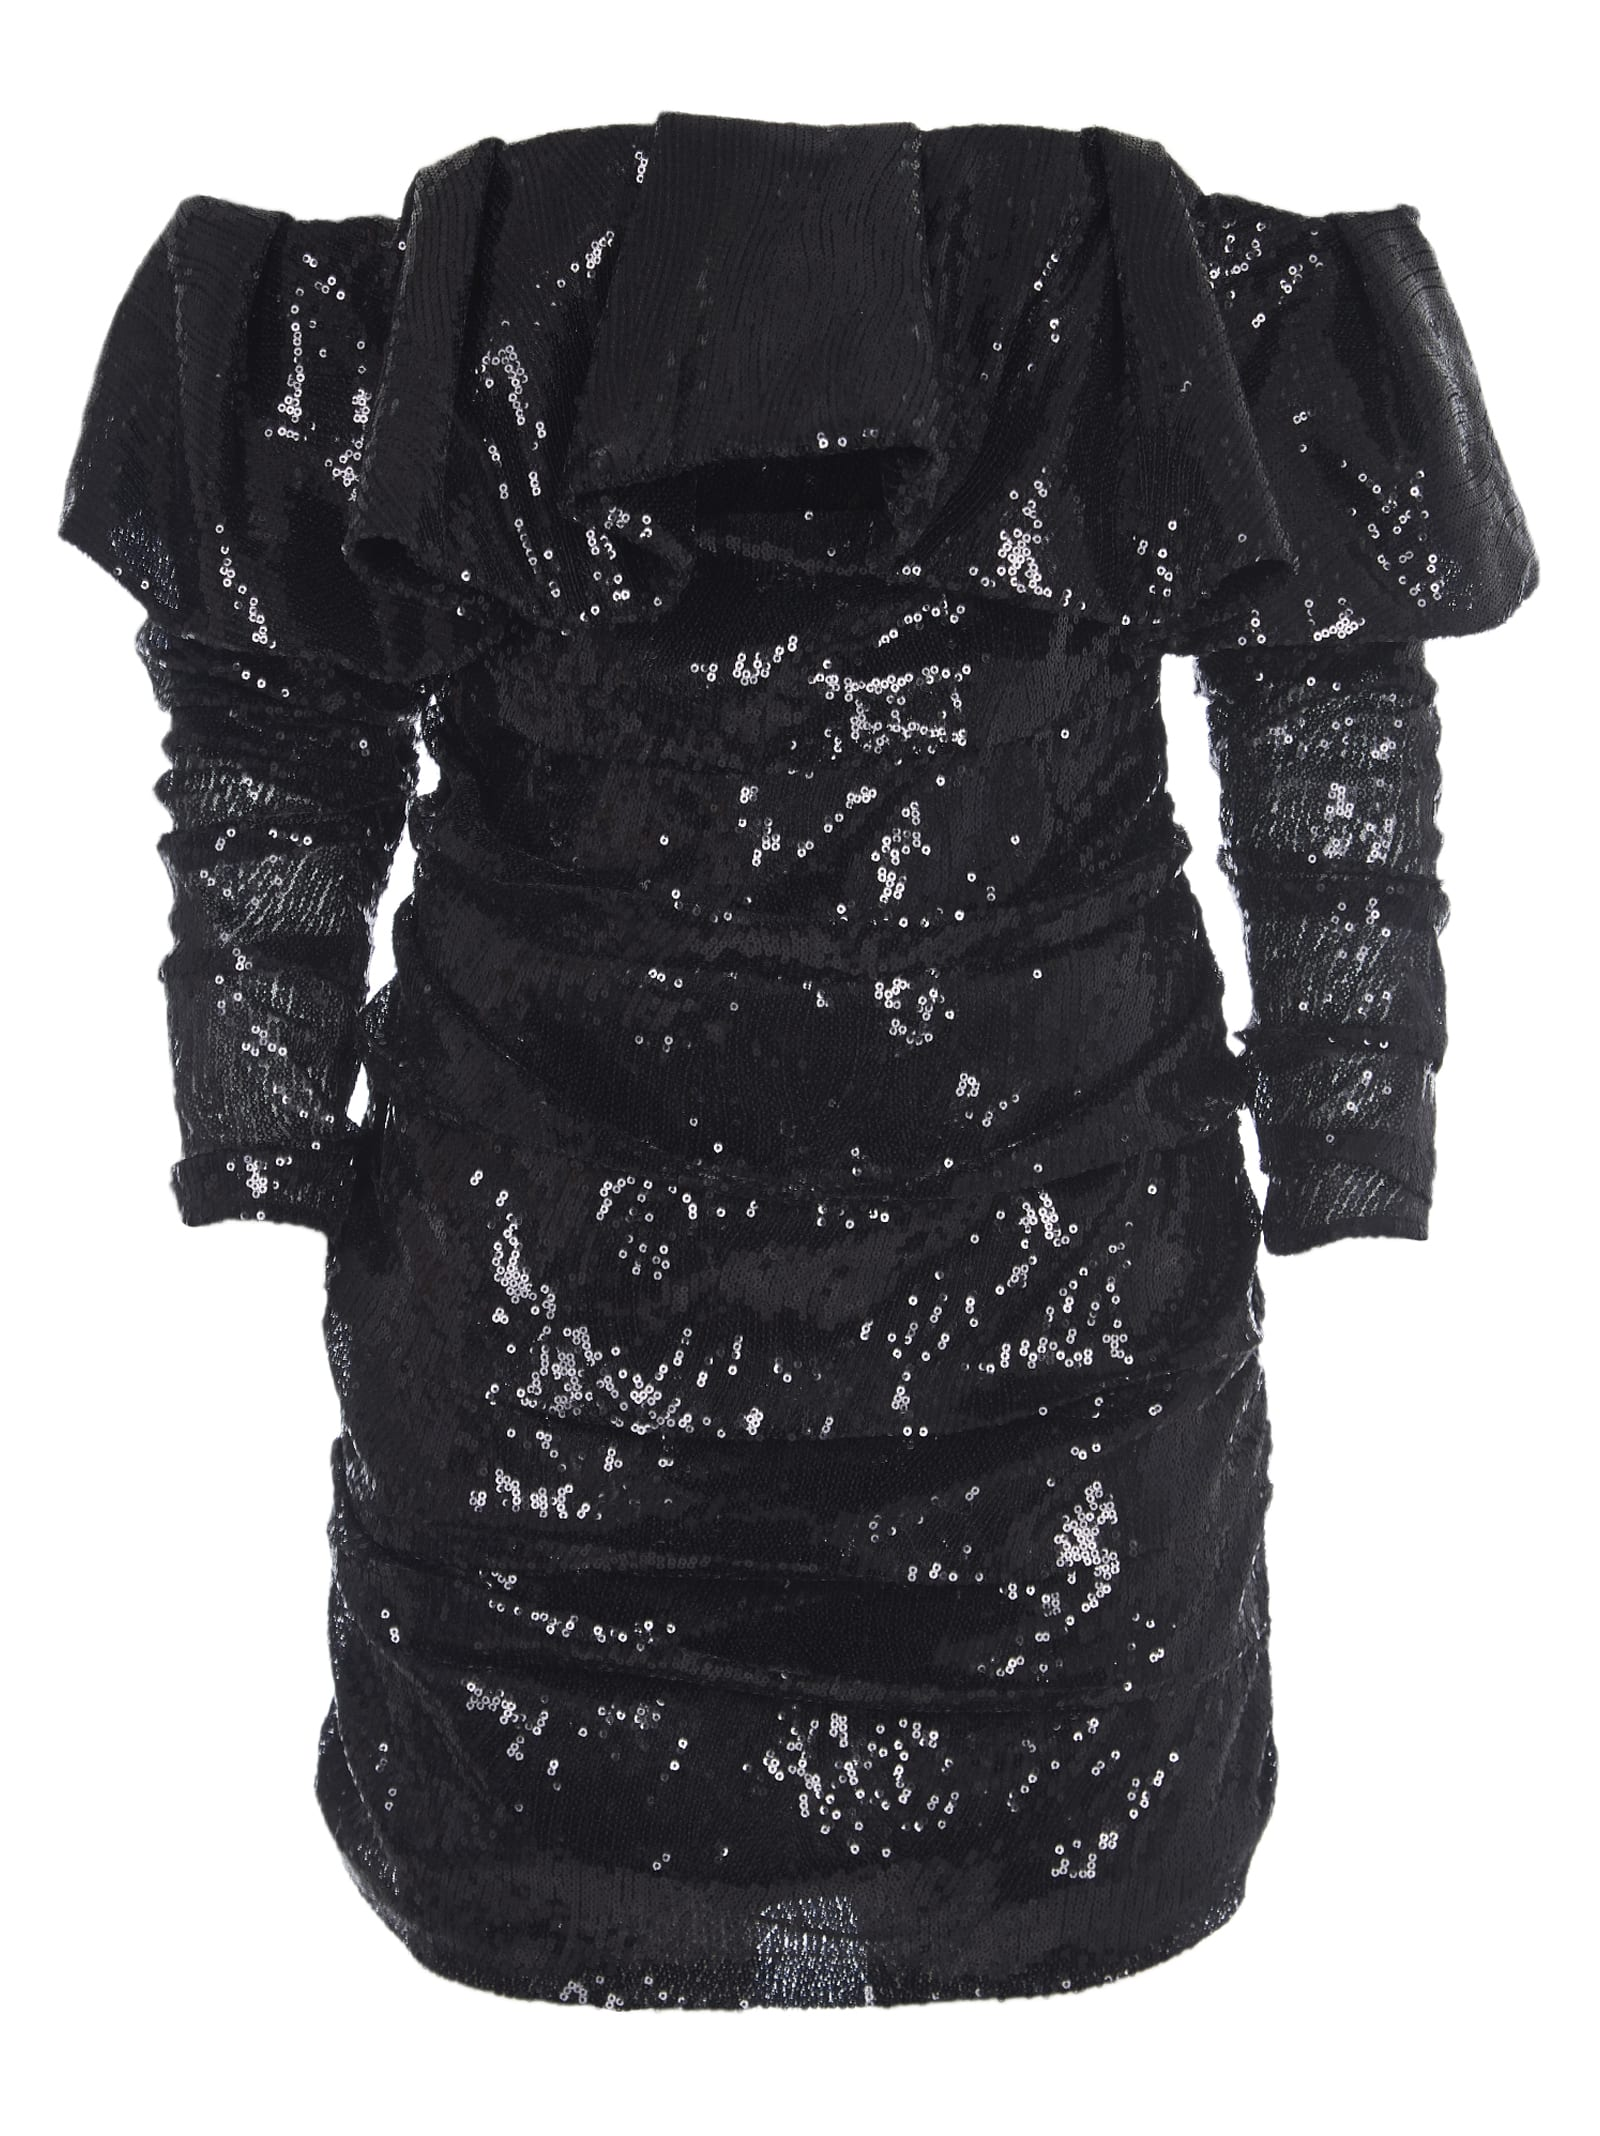 The Attico Black Sequins Dress